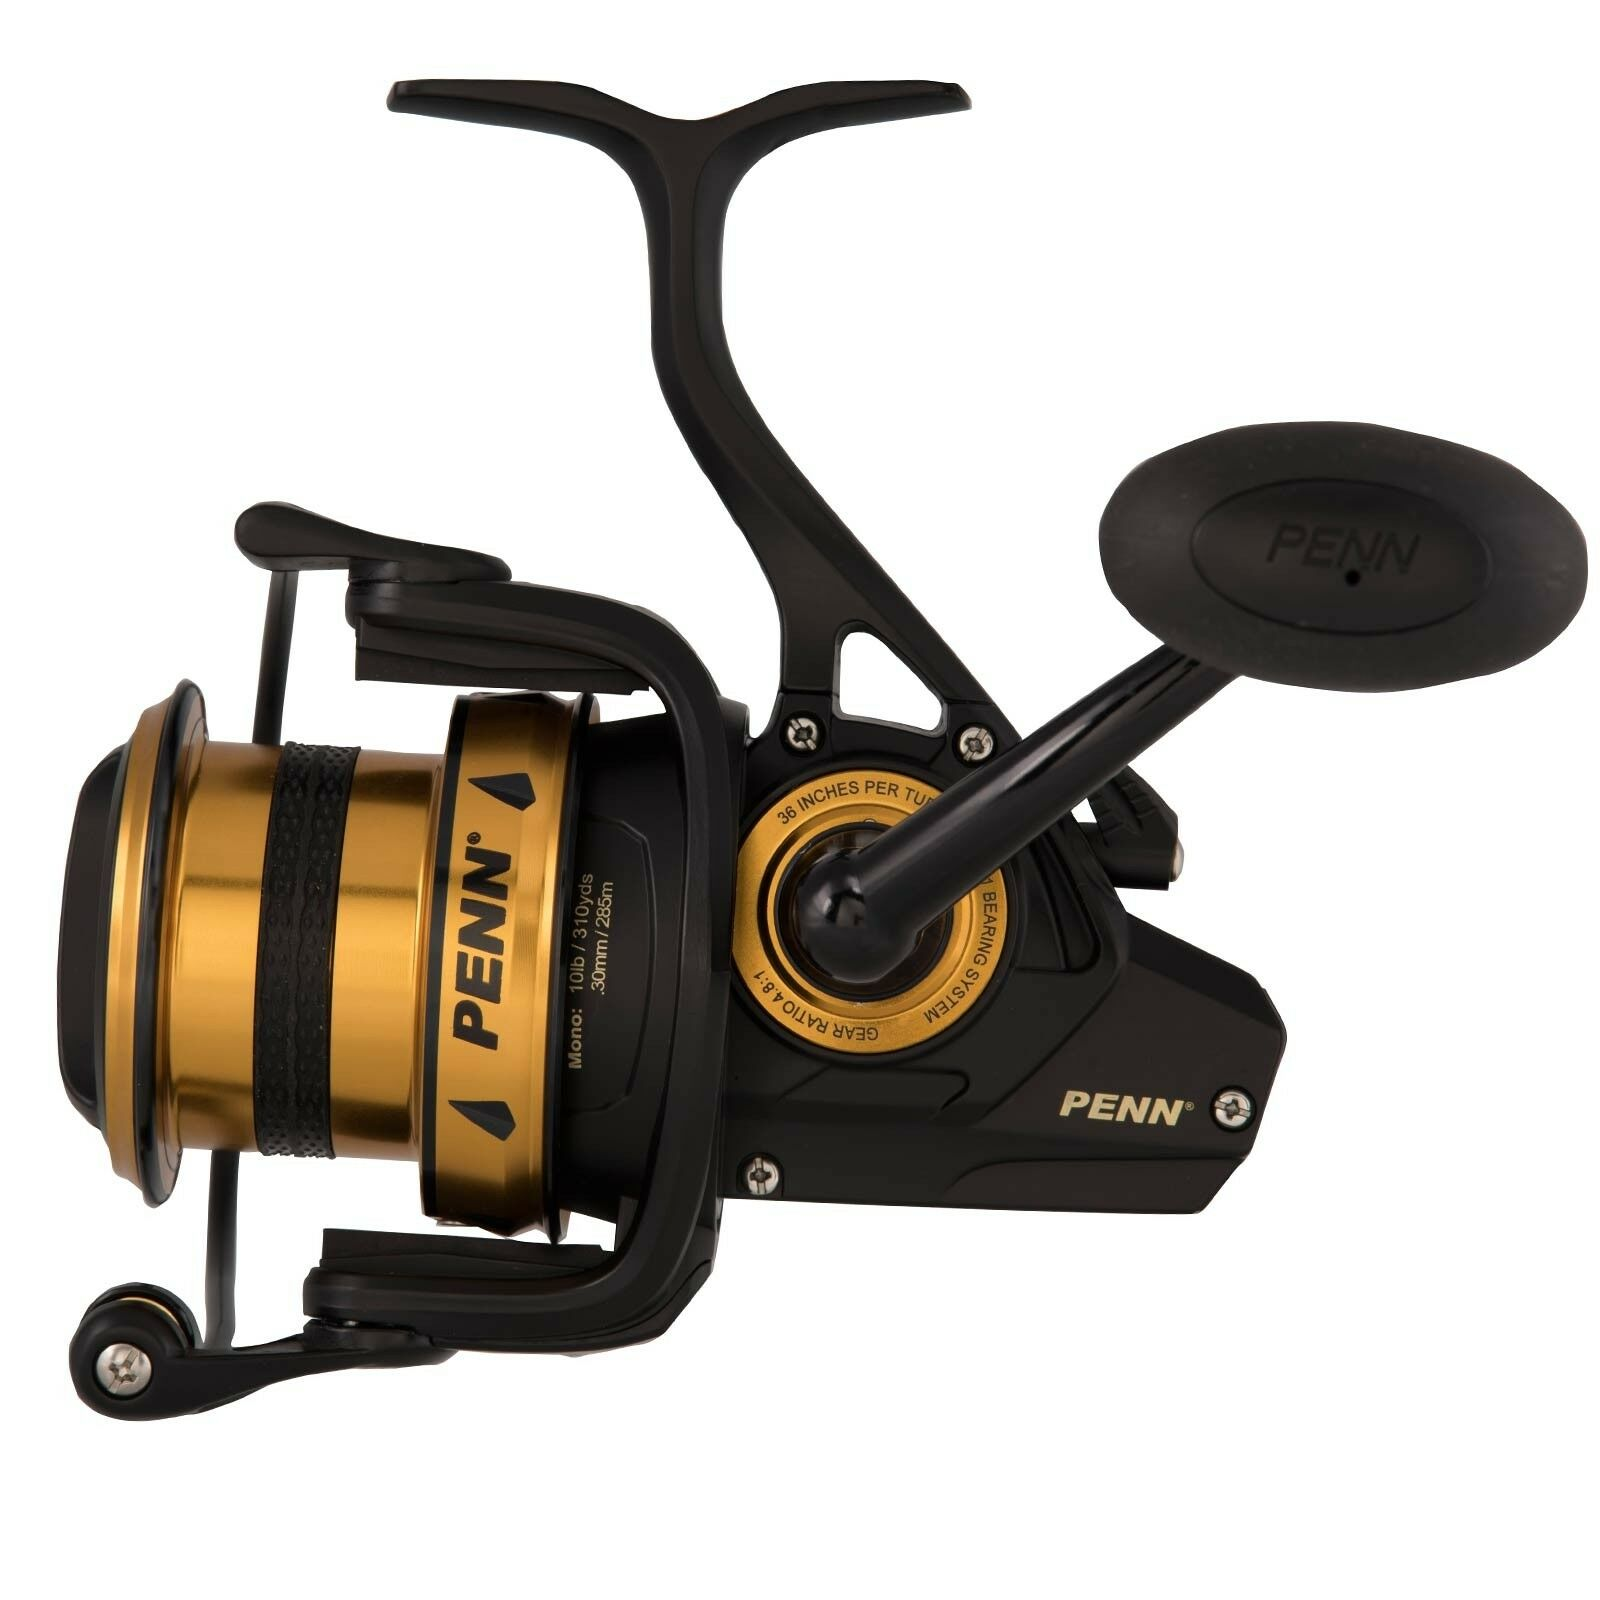 Penn spinfisher spinning weitwurfrolle-vi Long cast 5500lc